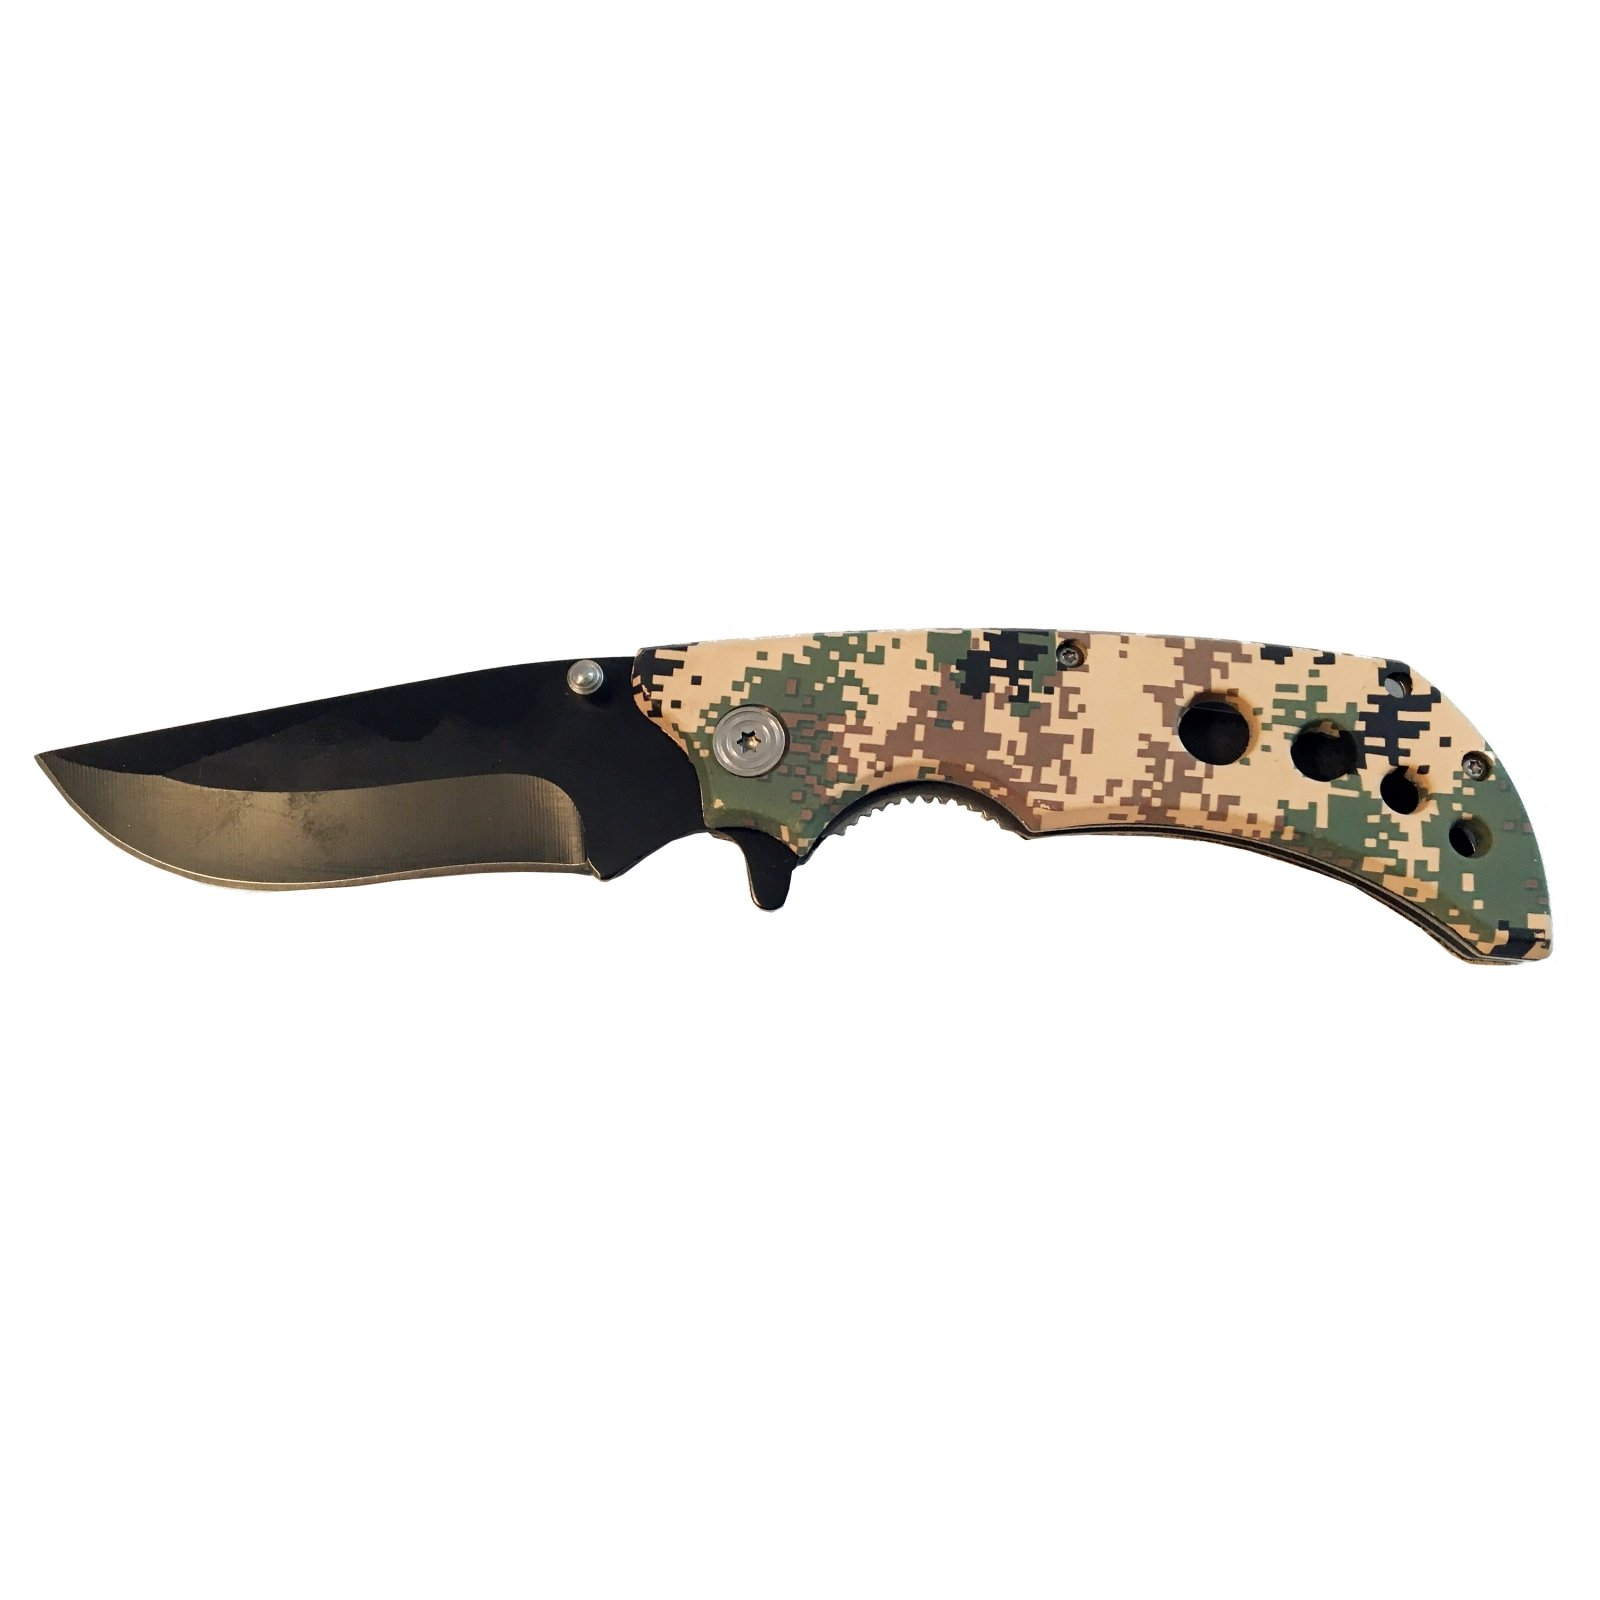 ASR Outdoor Folding Pocket Knife ABS Handle 3.5 Inch Blade - Digital Camo